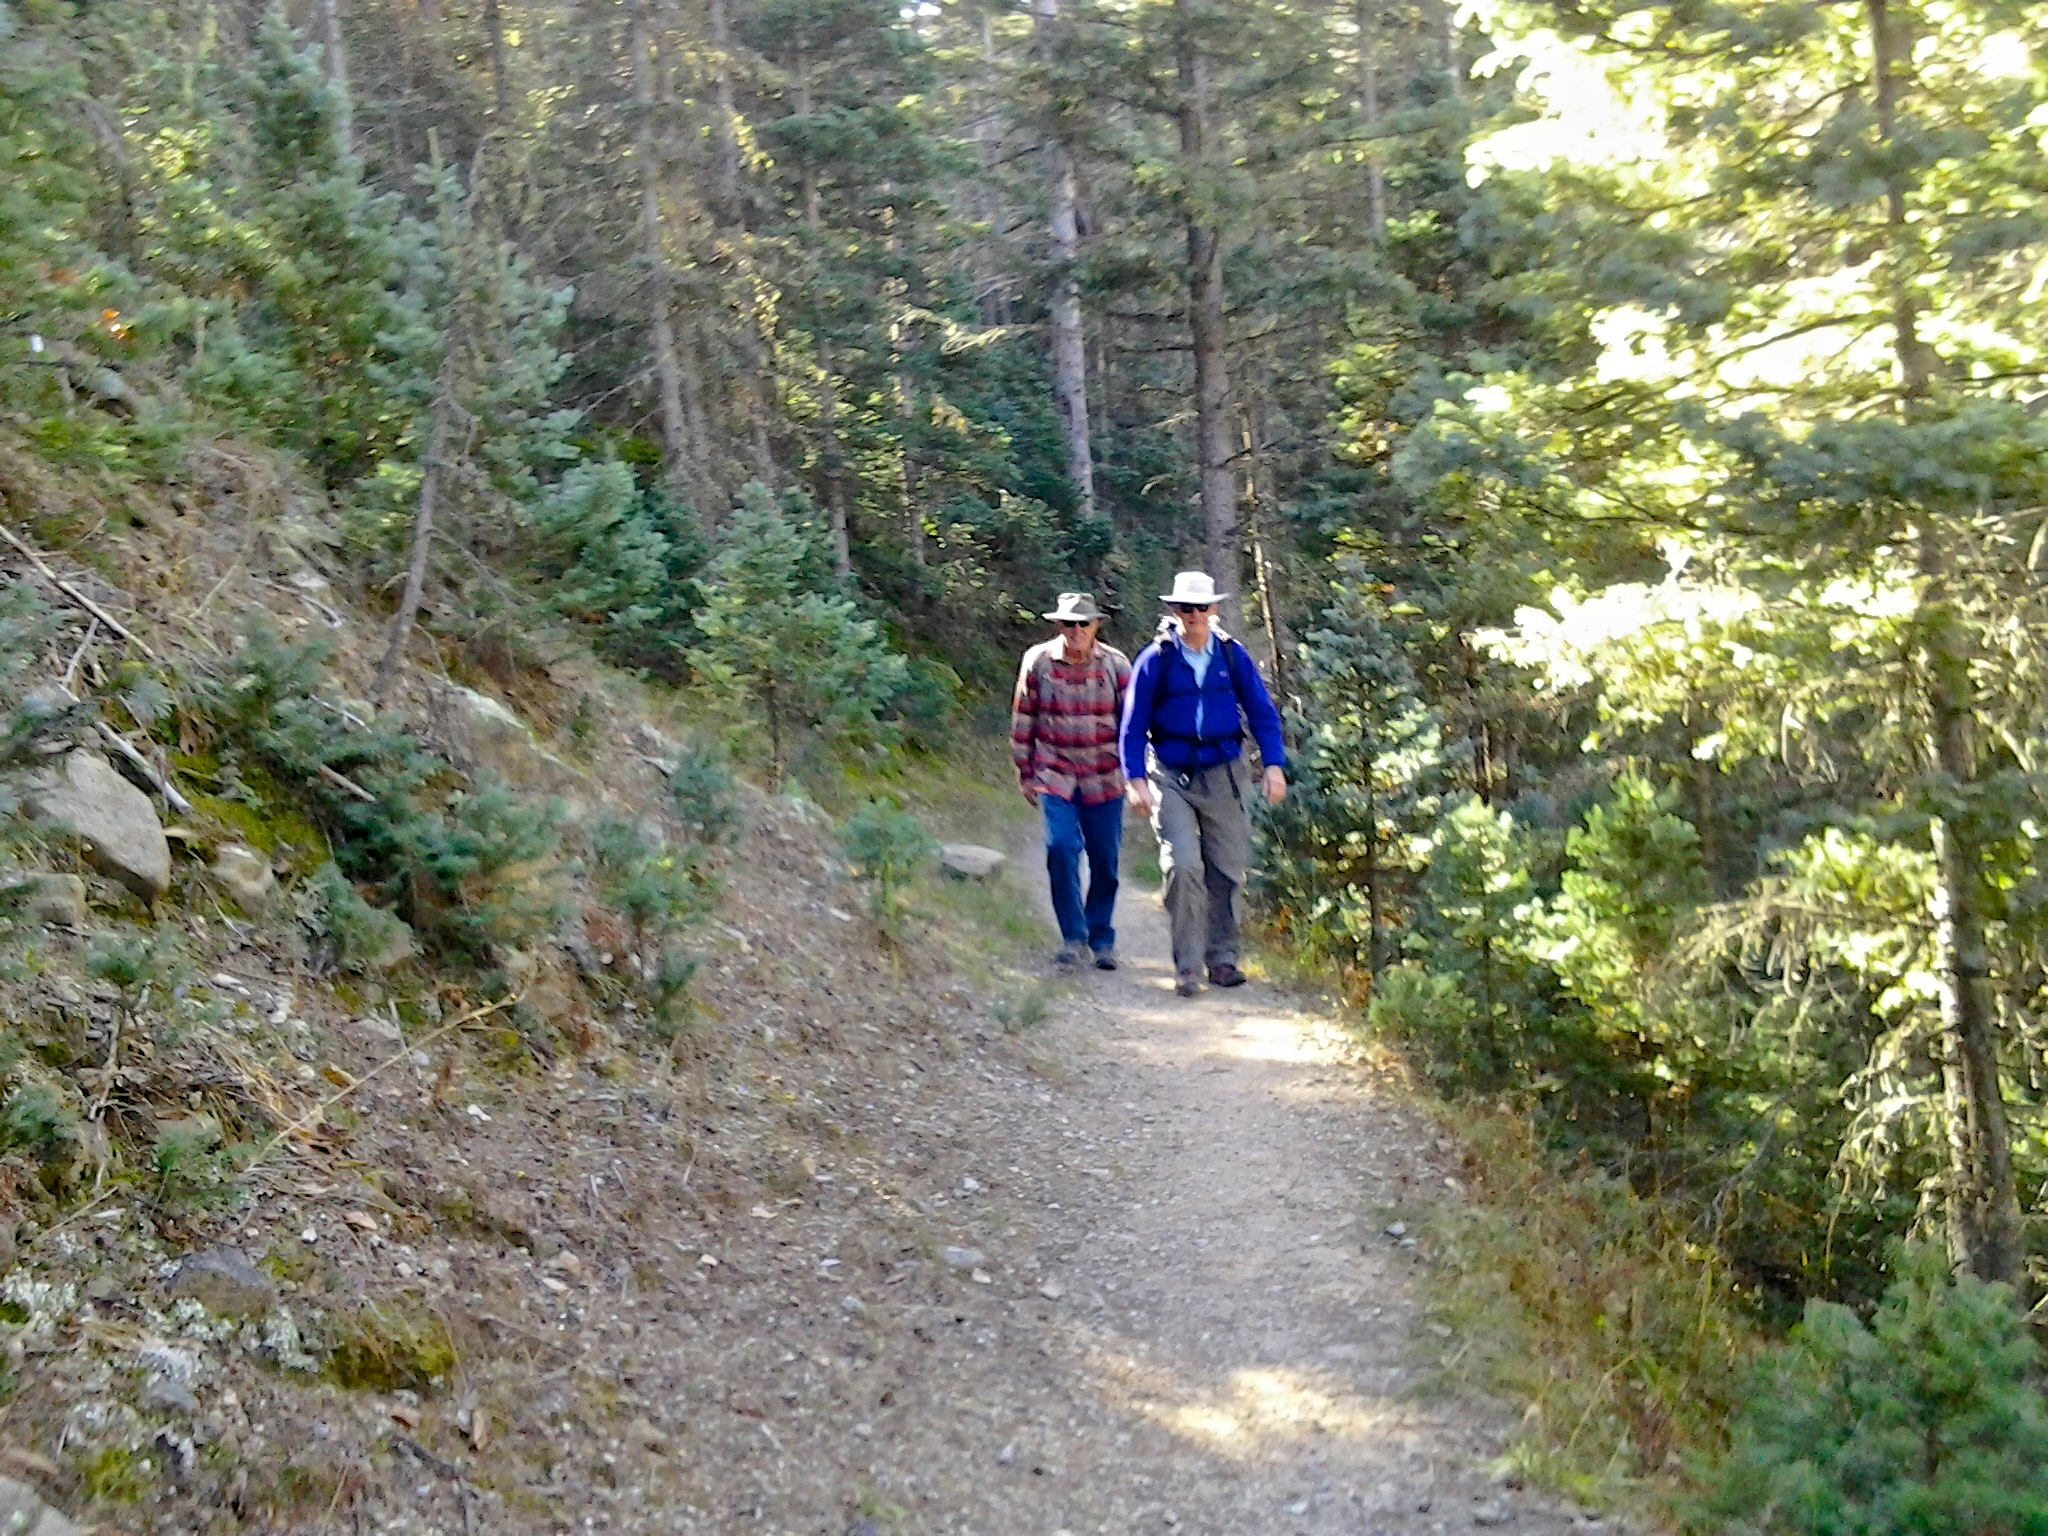 How Our Wilderness Hike Helped Us Deal With the Election Results